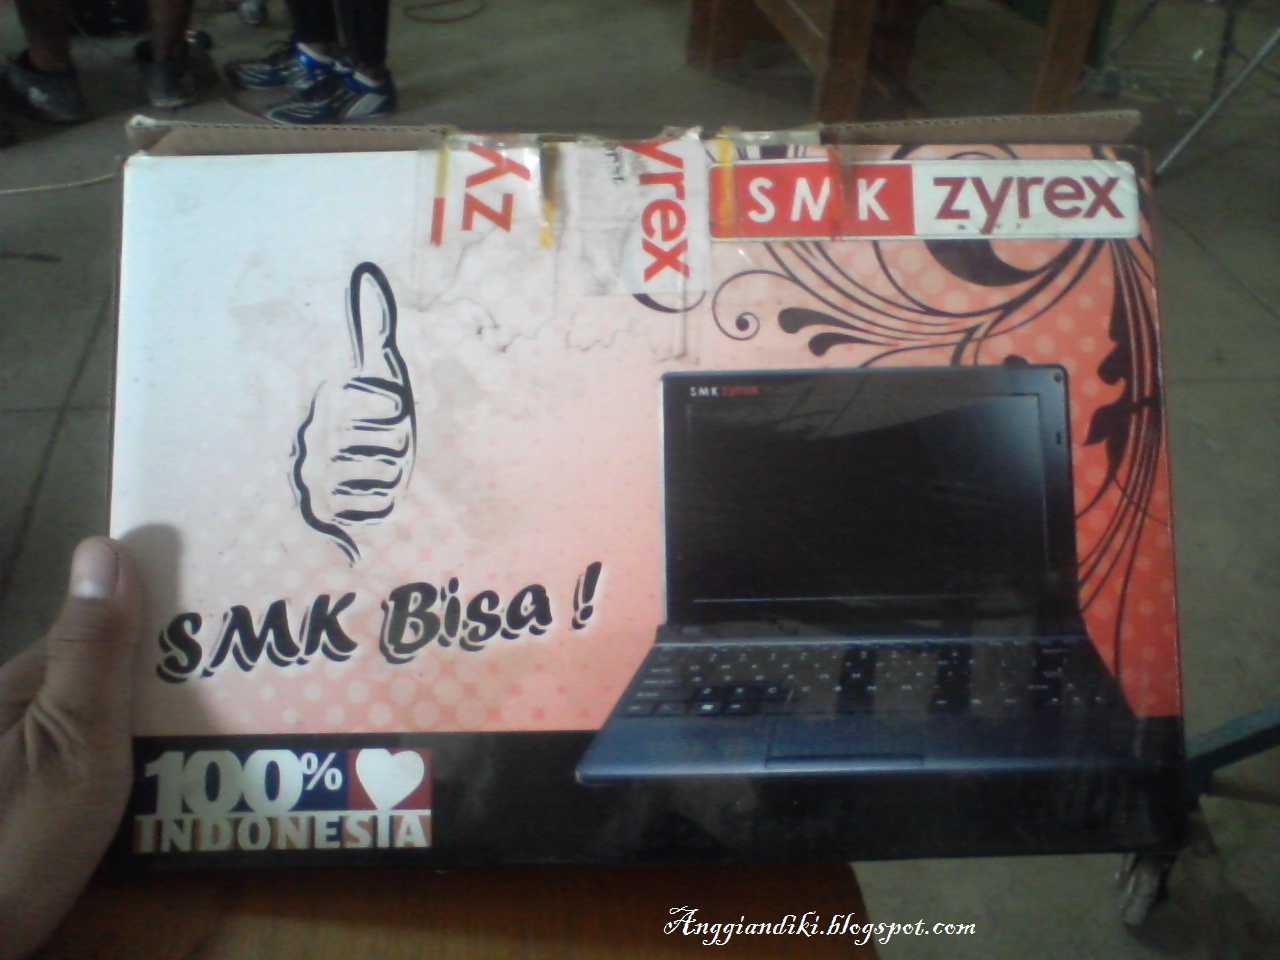 download driver notebook smk zyrex m1115